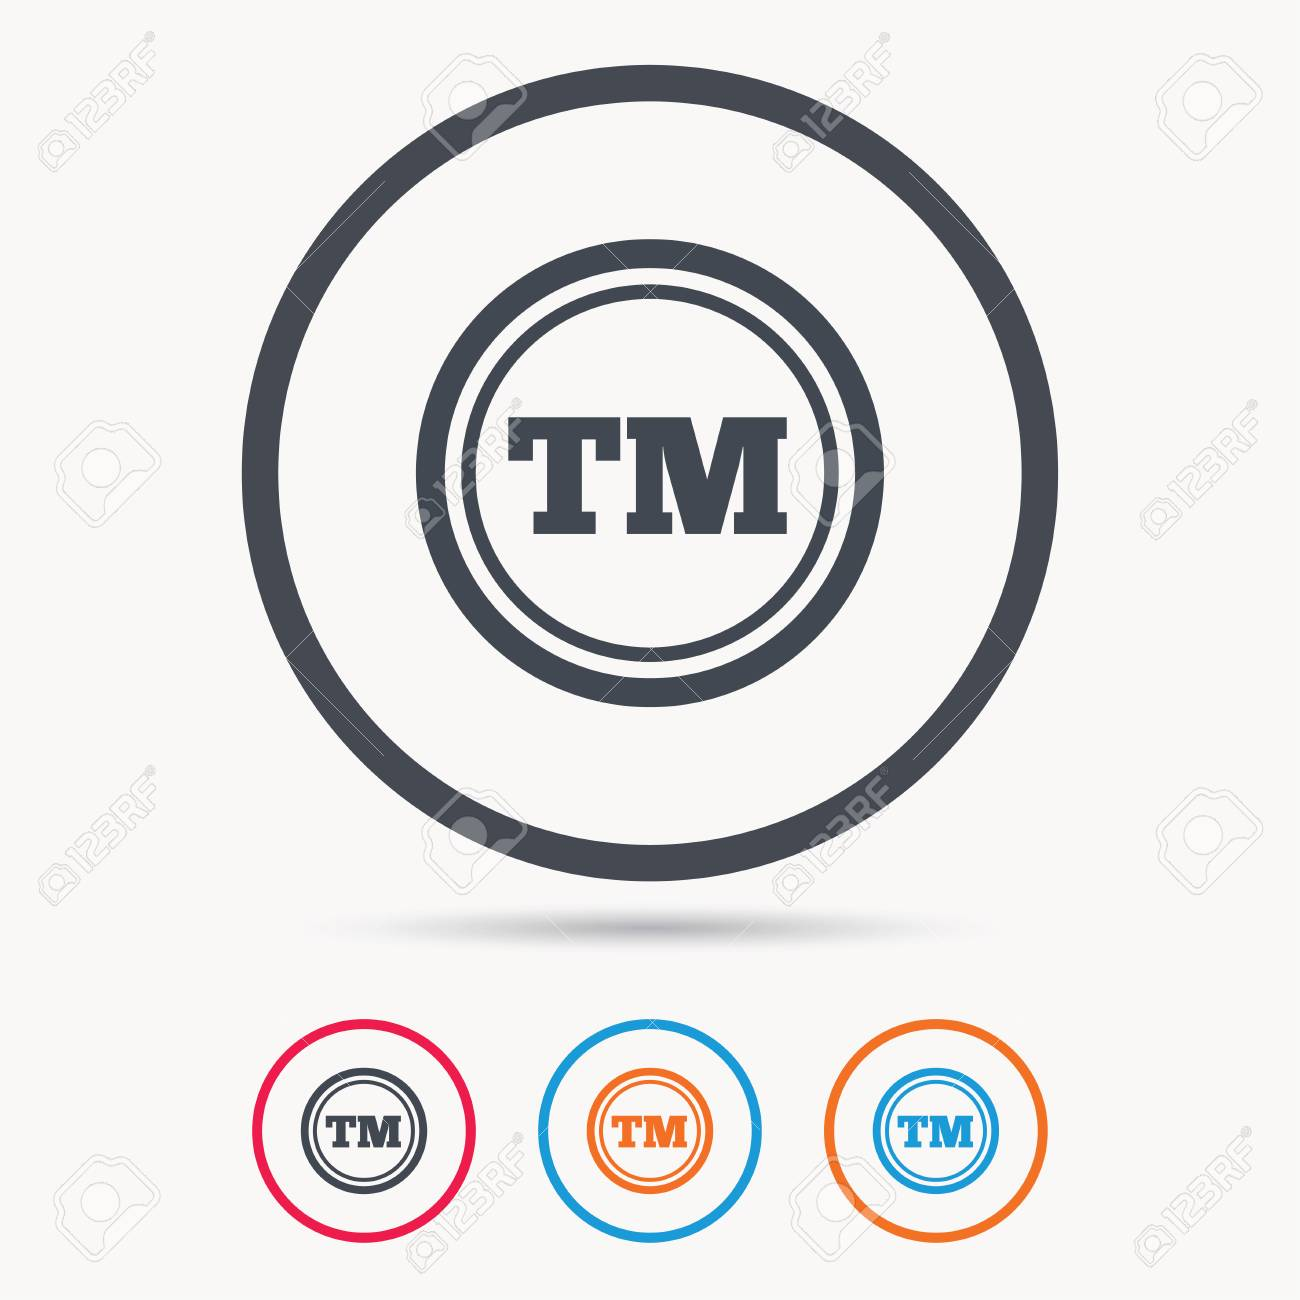 Trademark tm symbol gallery symbol and sign ideas registered tm trademark icon intellectual work protection symbol registered tm trademark icon intellectual work protection symbol buycottarizona Gallery